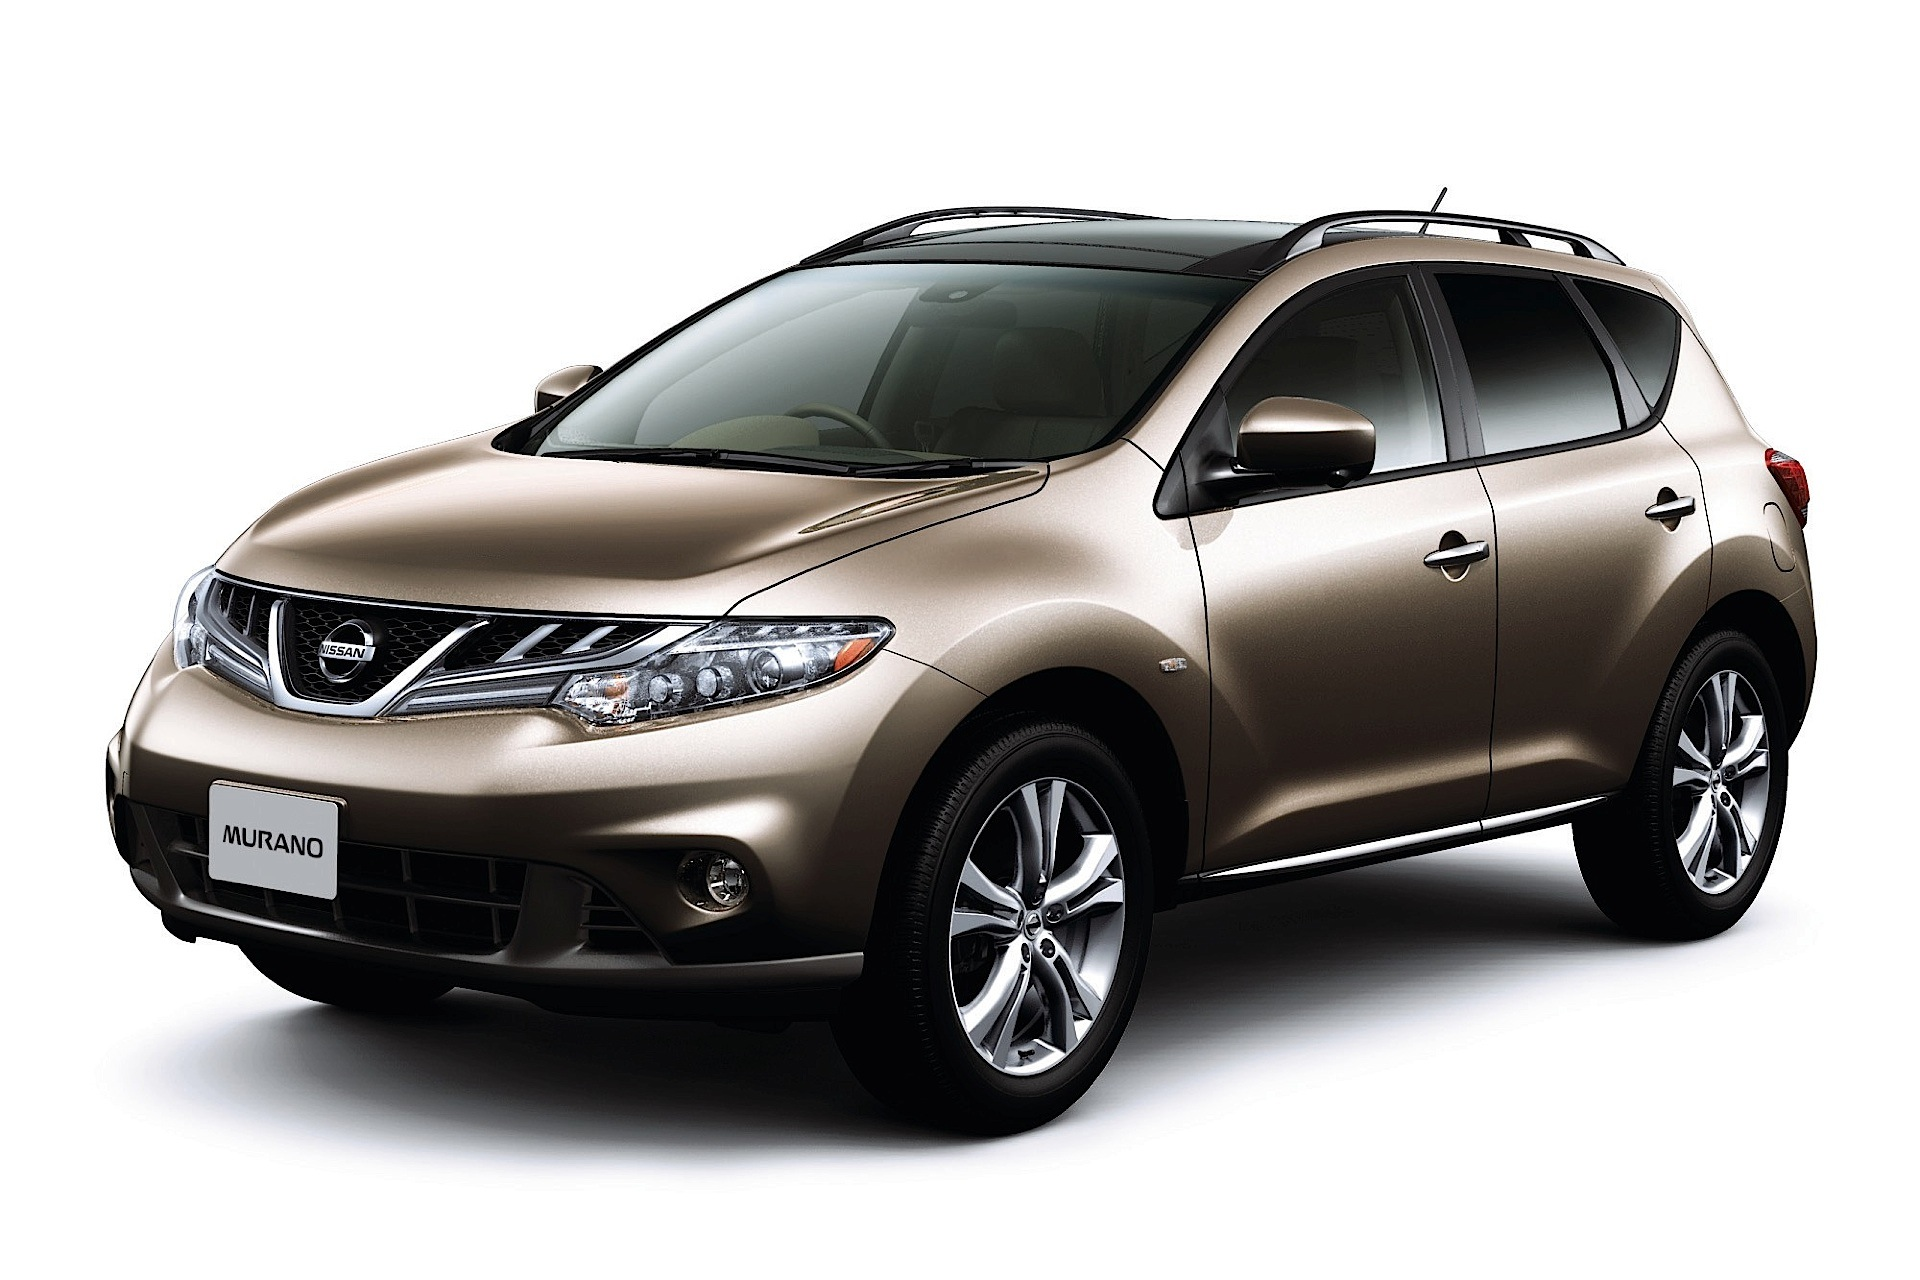 nissan murano specs 2008 2009 2010 2011 2012 2013 2014 2015 autoevolution. Black Bedroom Furniture Sets. Home Design Ideas